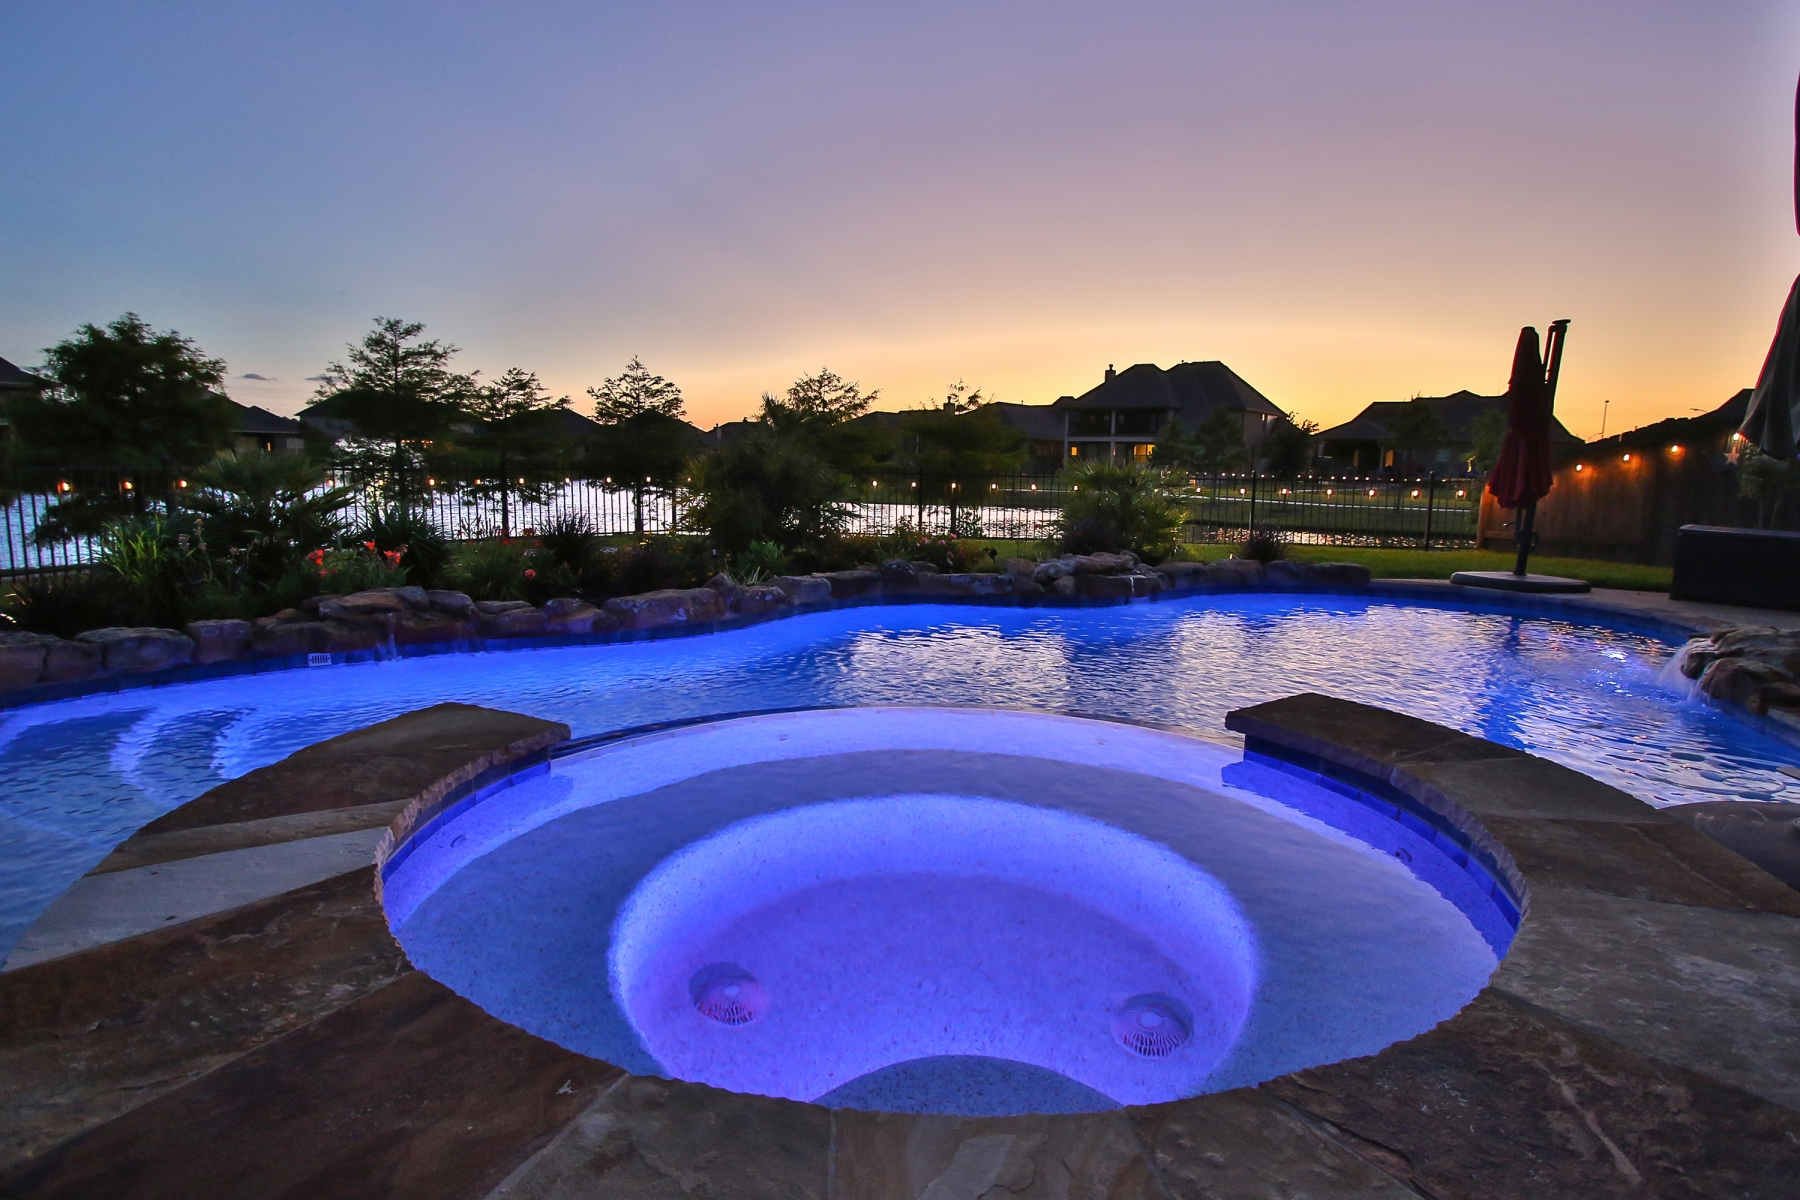 Spa View at Night - Freeform Pool with Custom Lighting